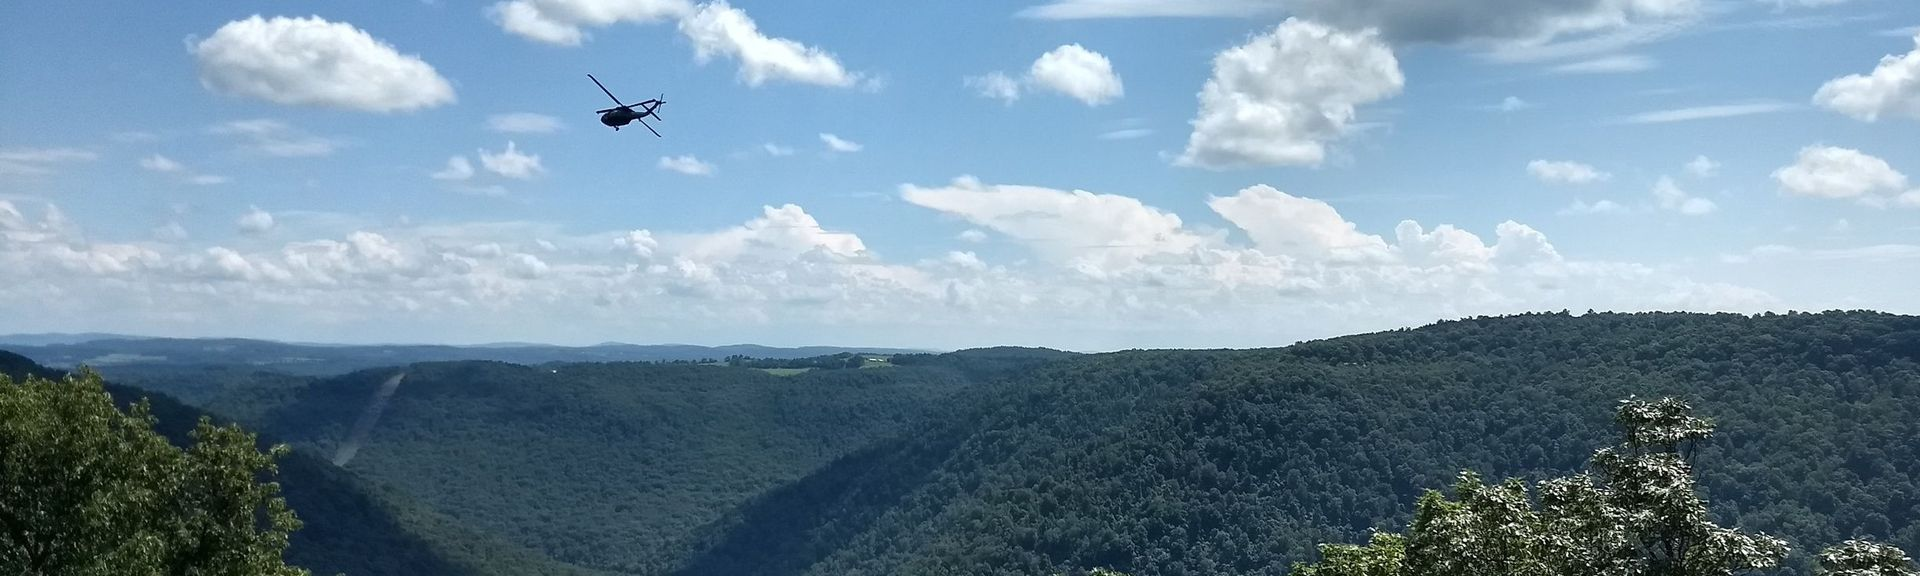 Coopers Rock State Forest, Bruceton Mills, West Virginia, United States